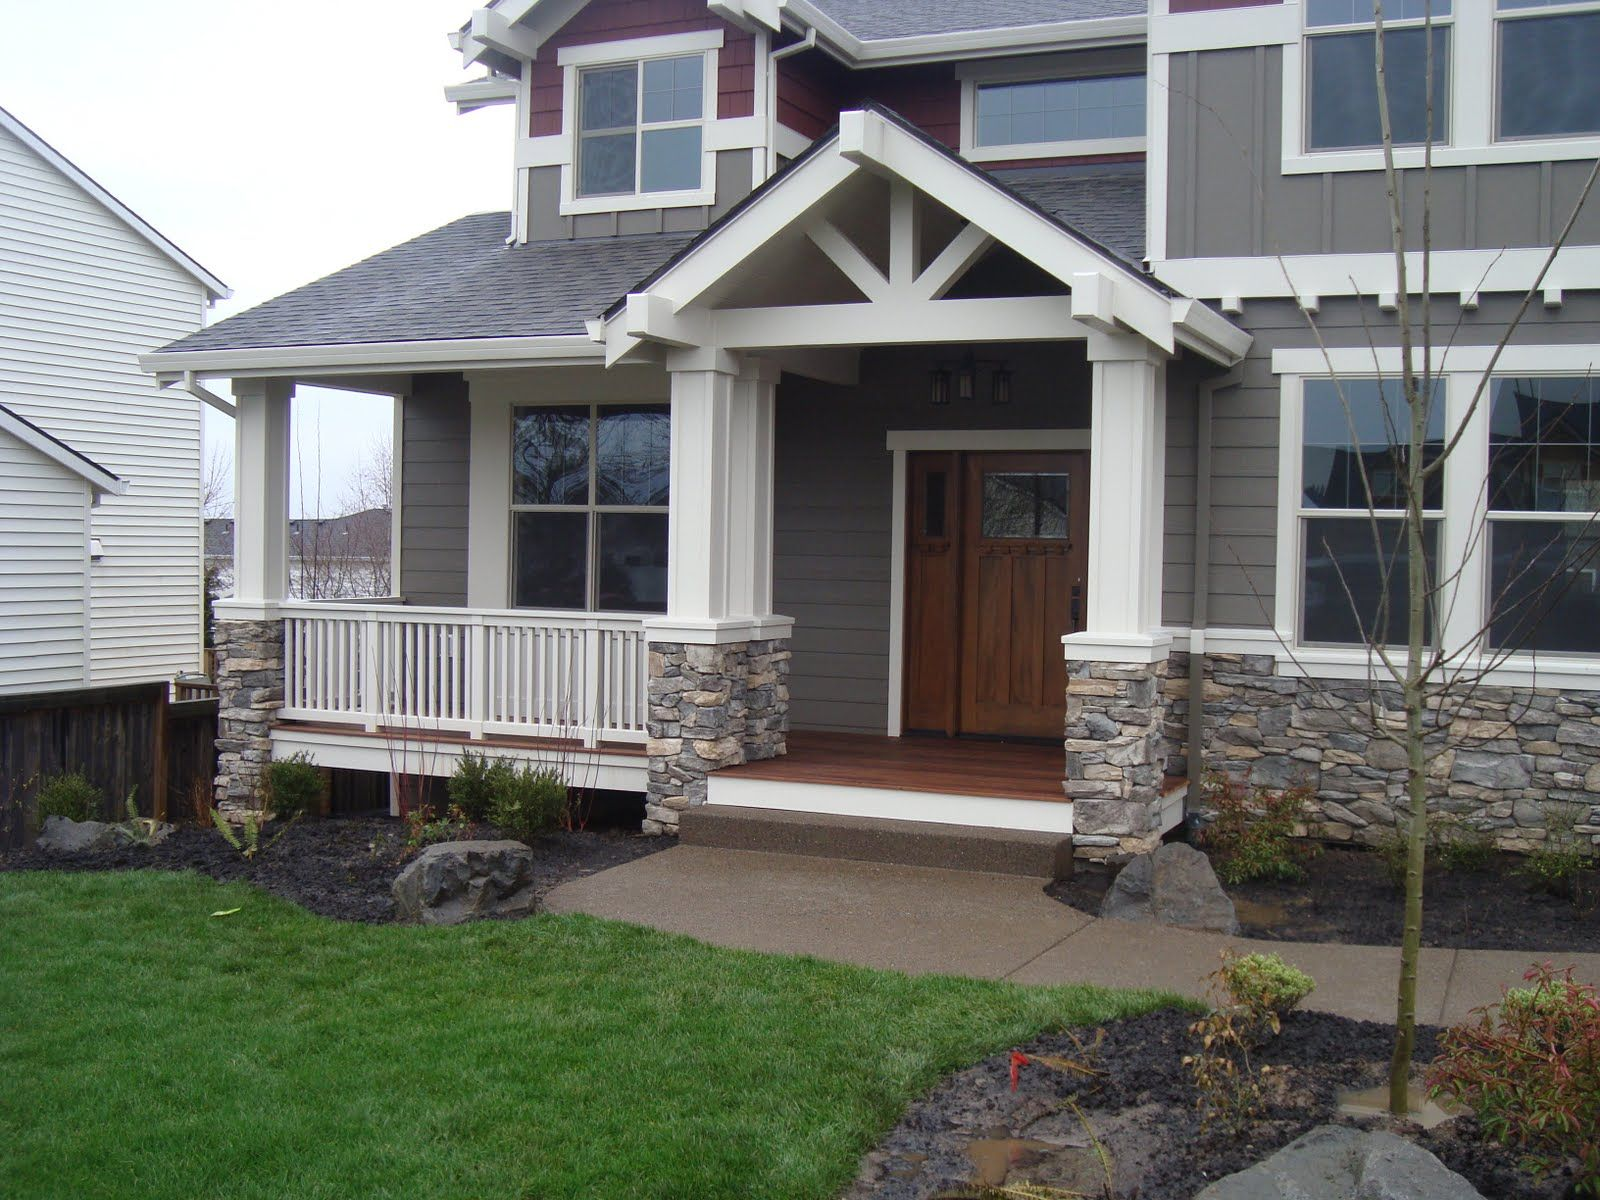 Garage exterior rock vaneer siding halgren construction for Exterior natural stone for houses